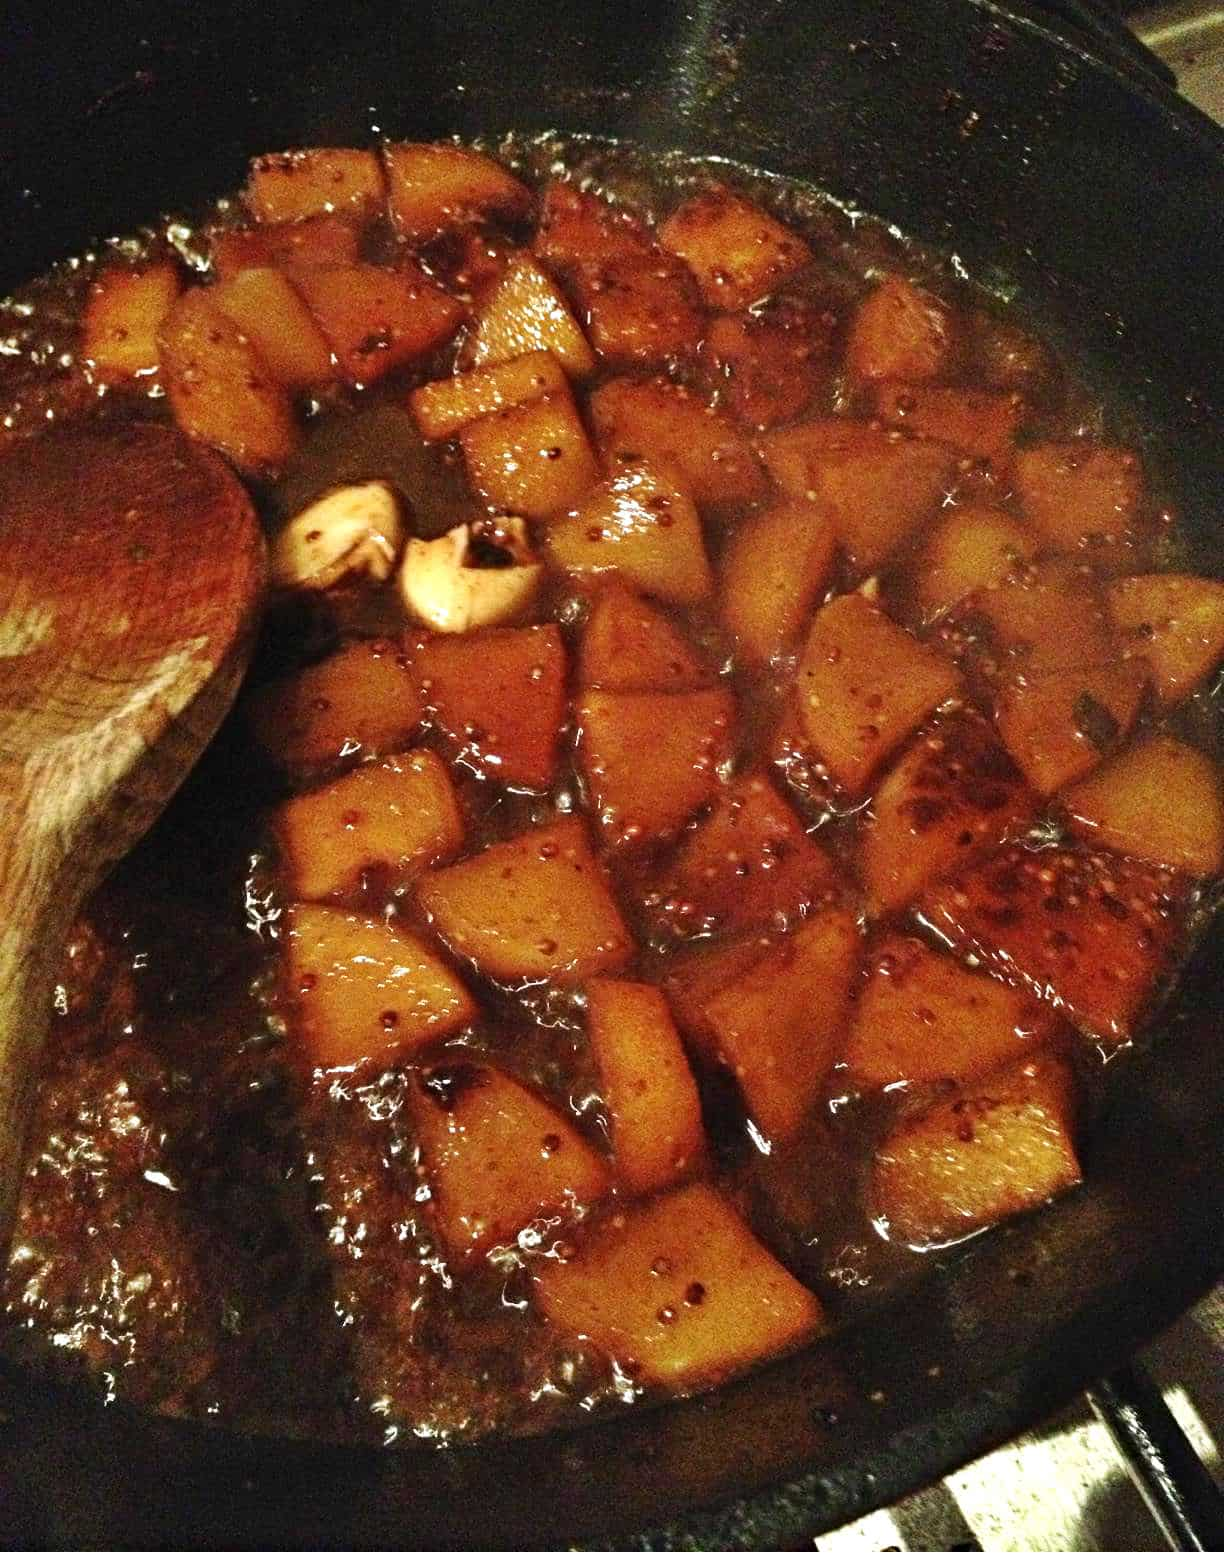 Apples in honey mustard gravy